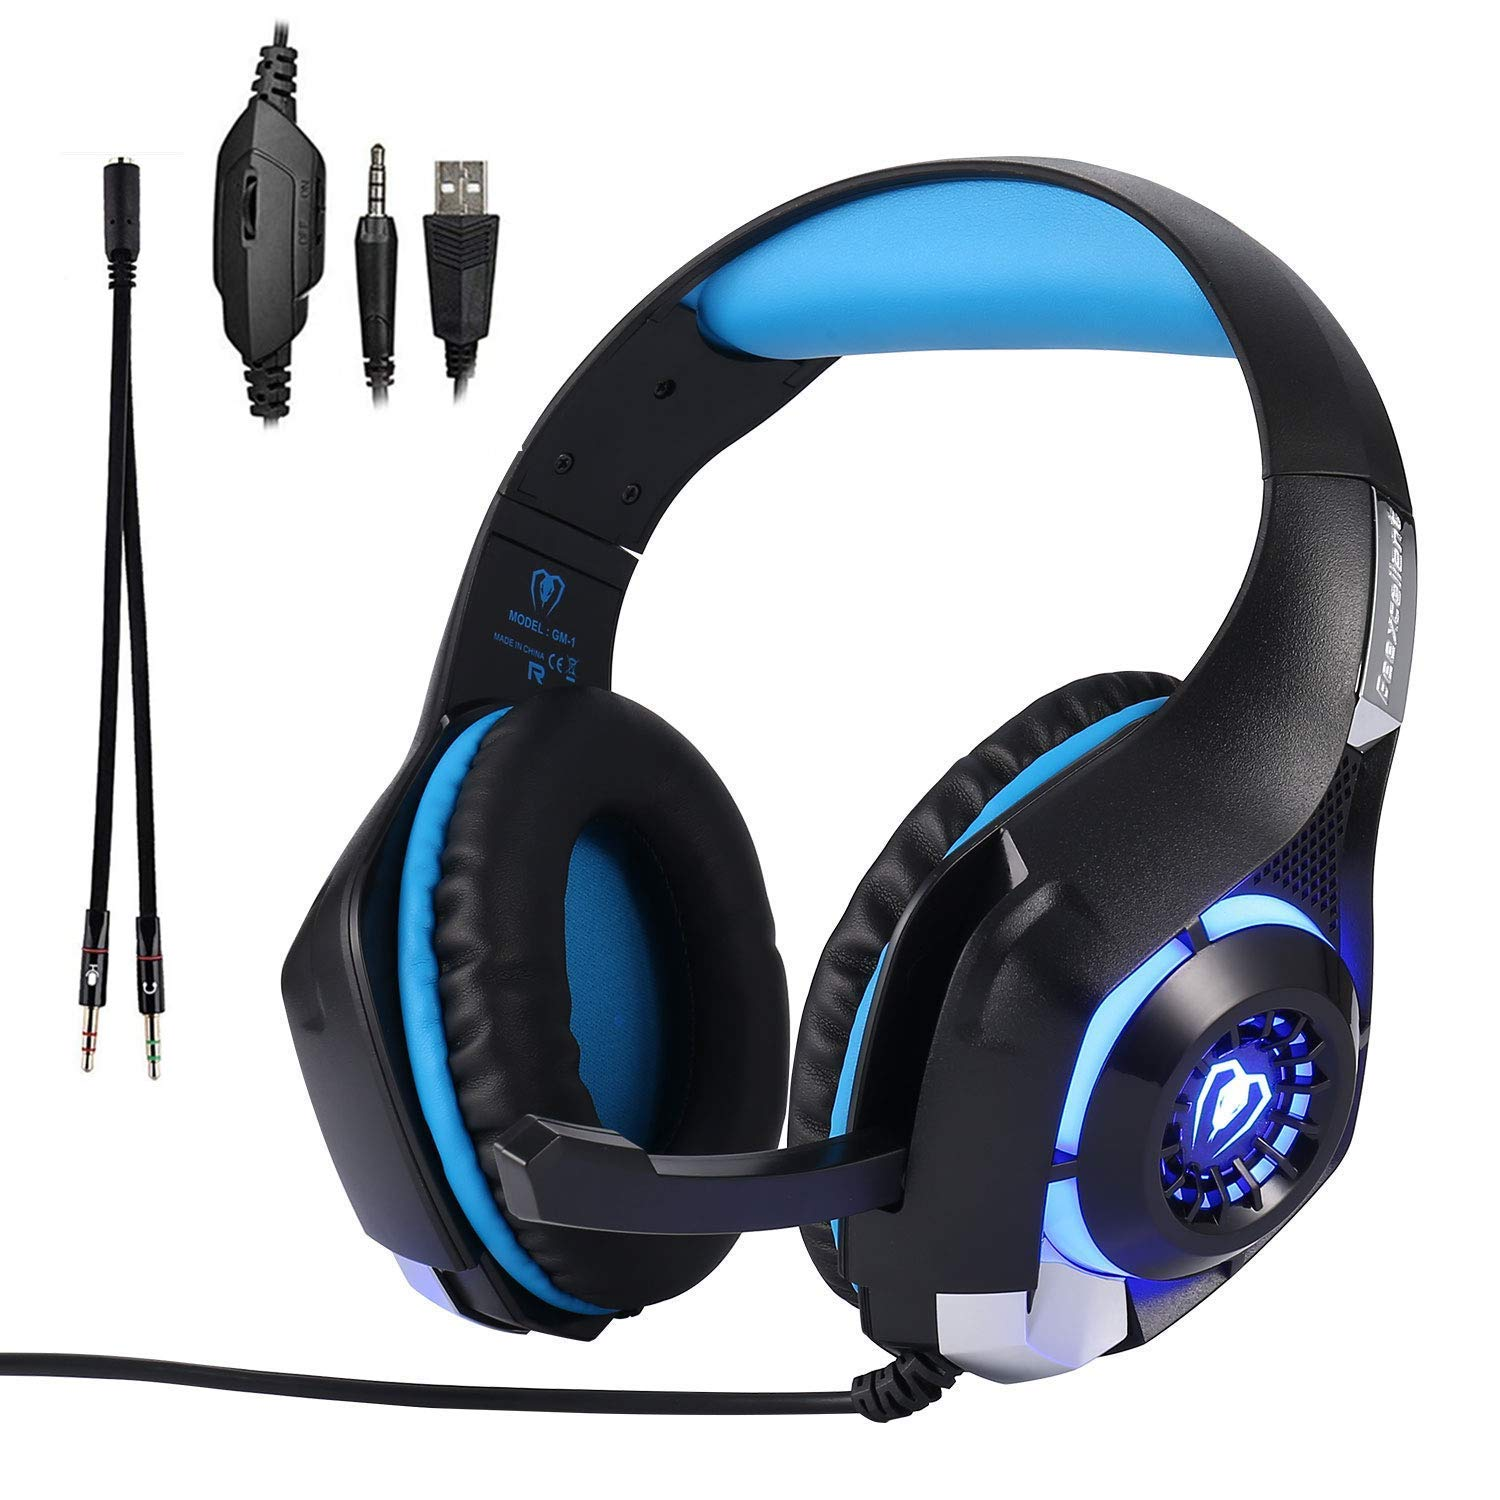 Xbox One Gaming Headset for PS4 PC Laptop Tablet Smartphone Over-Ear Nintendo Switch Headphones with Mic and Rotary Volume Control Noise Cancelling LED Lighting and Stereo Surround Sound Headset